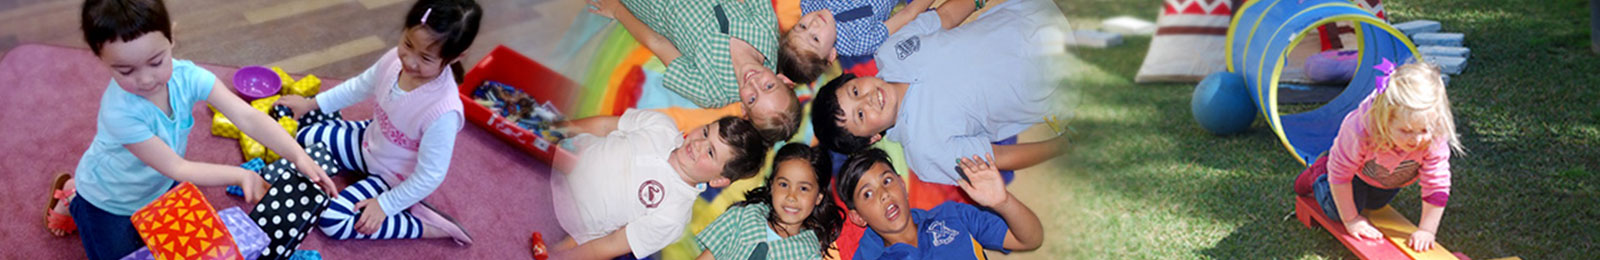 Children services banner image